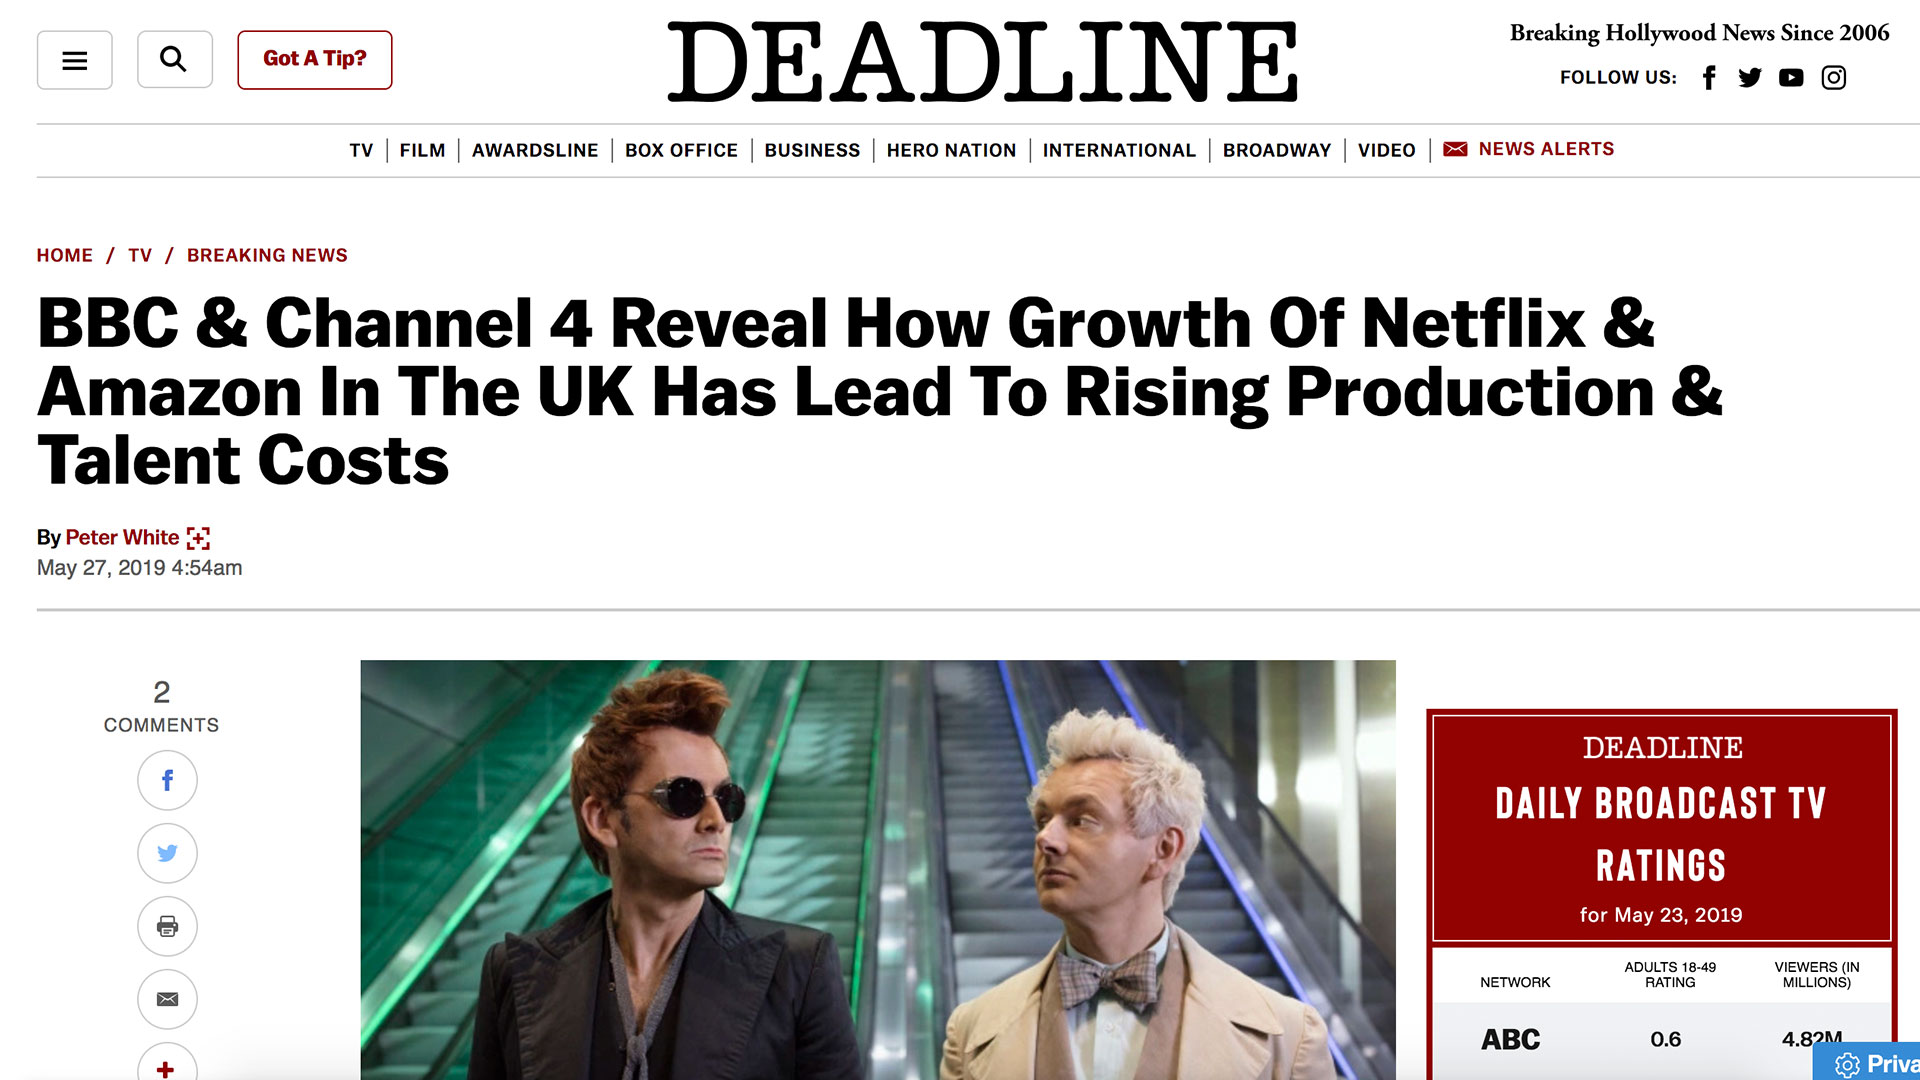 Fairness Rocks News BBC & Channel 4 Reveal How Growth Of Netflix & Amazon In The UK Has Lead To Rising Production & Talent Costs